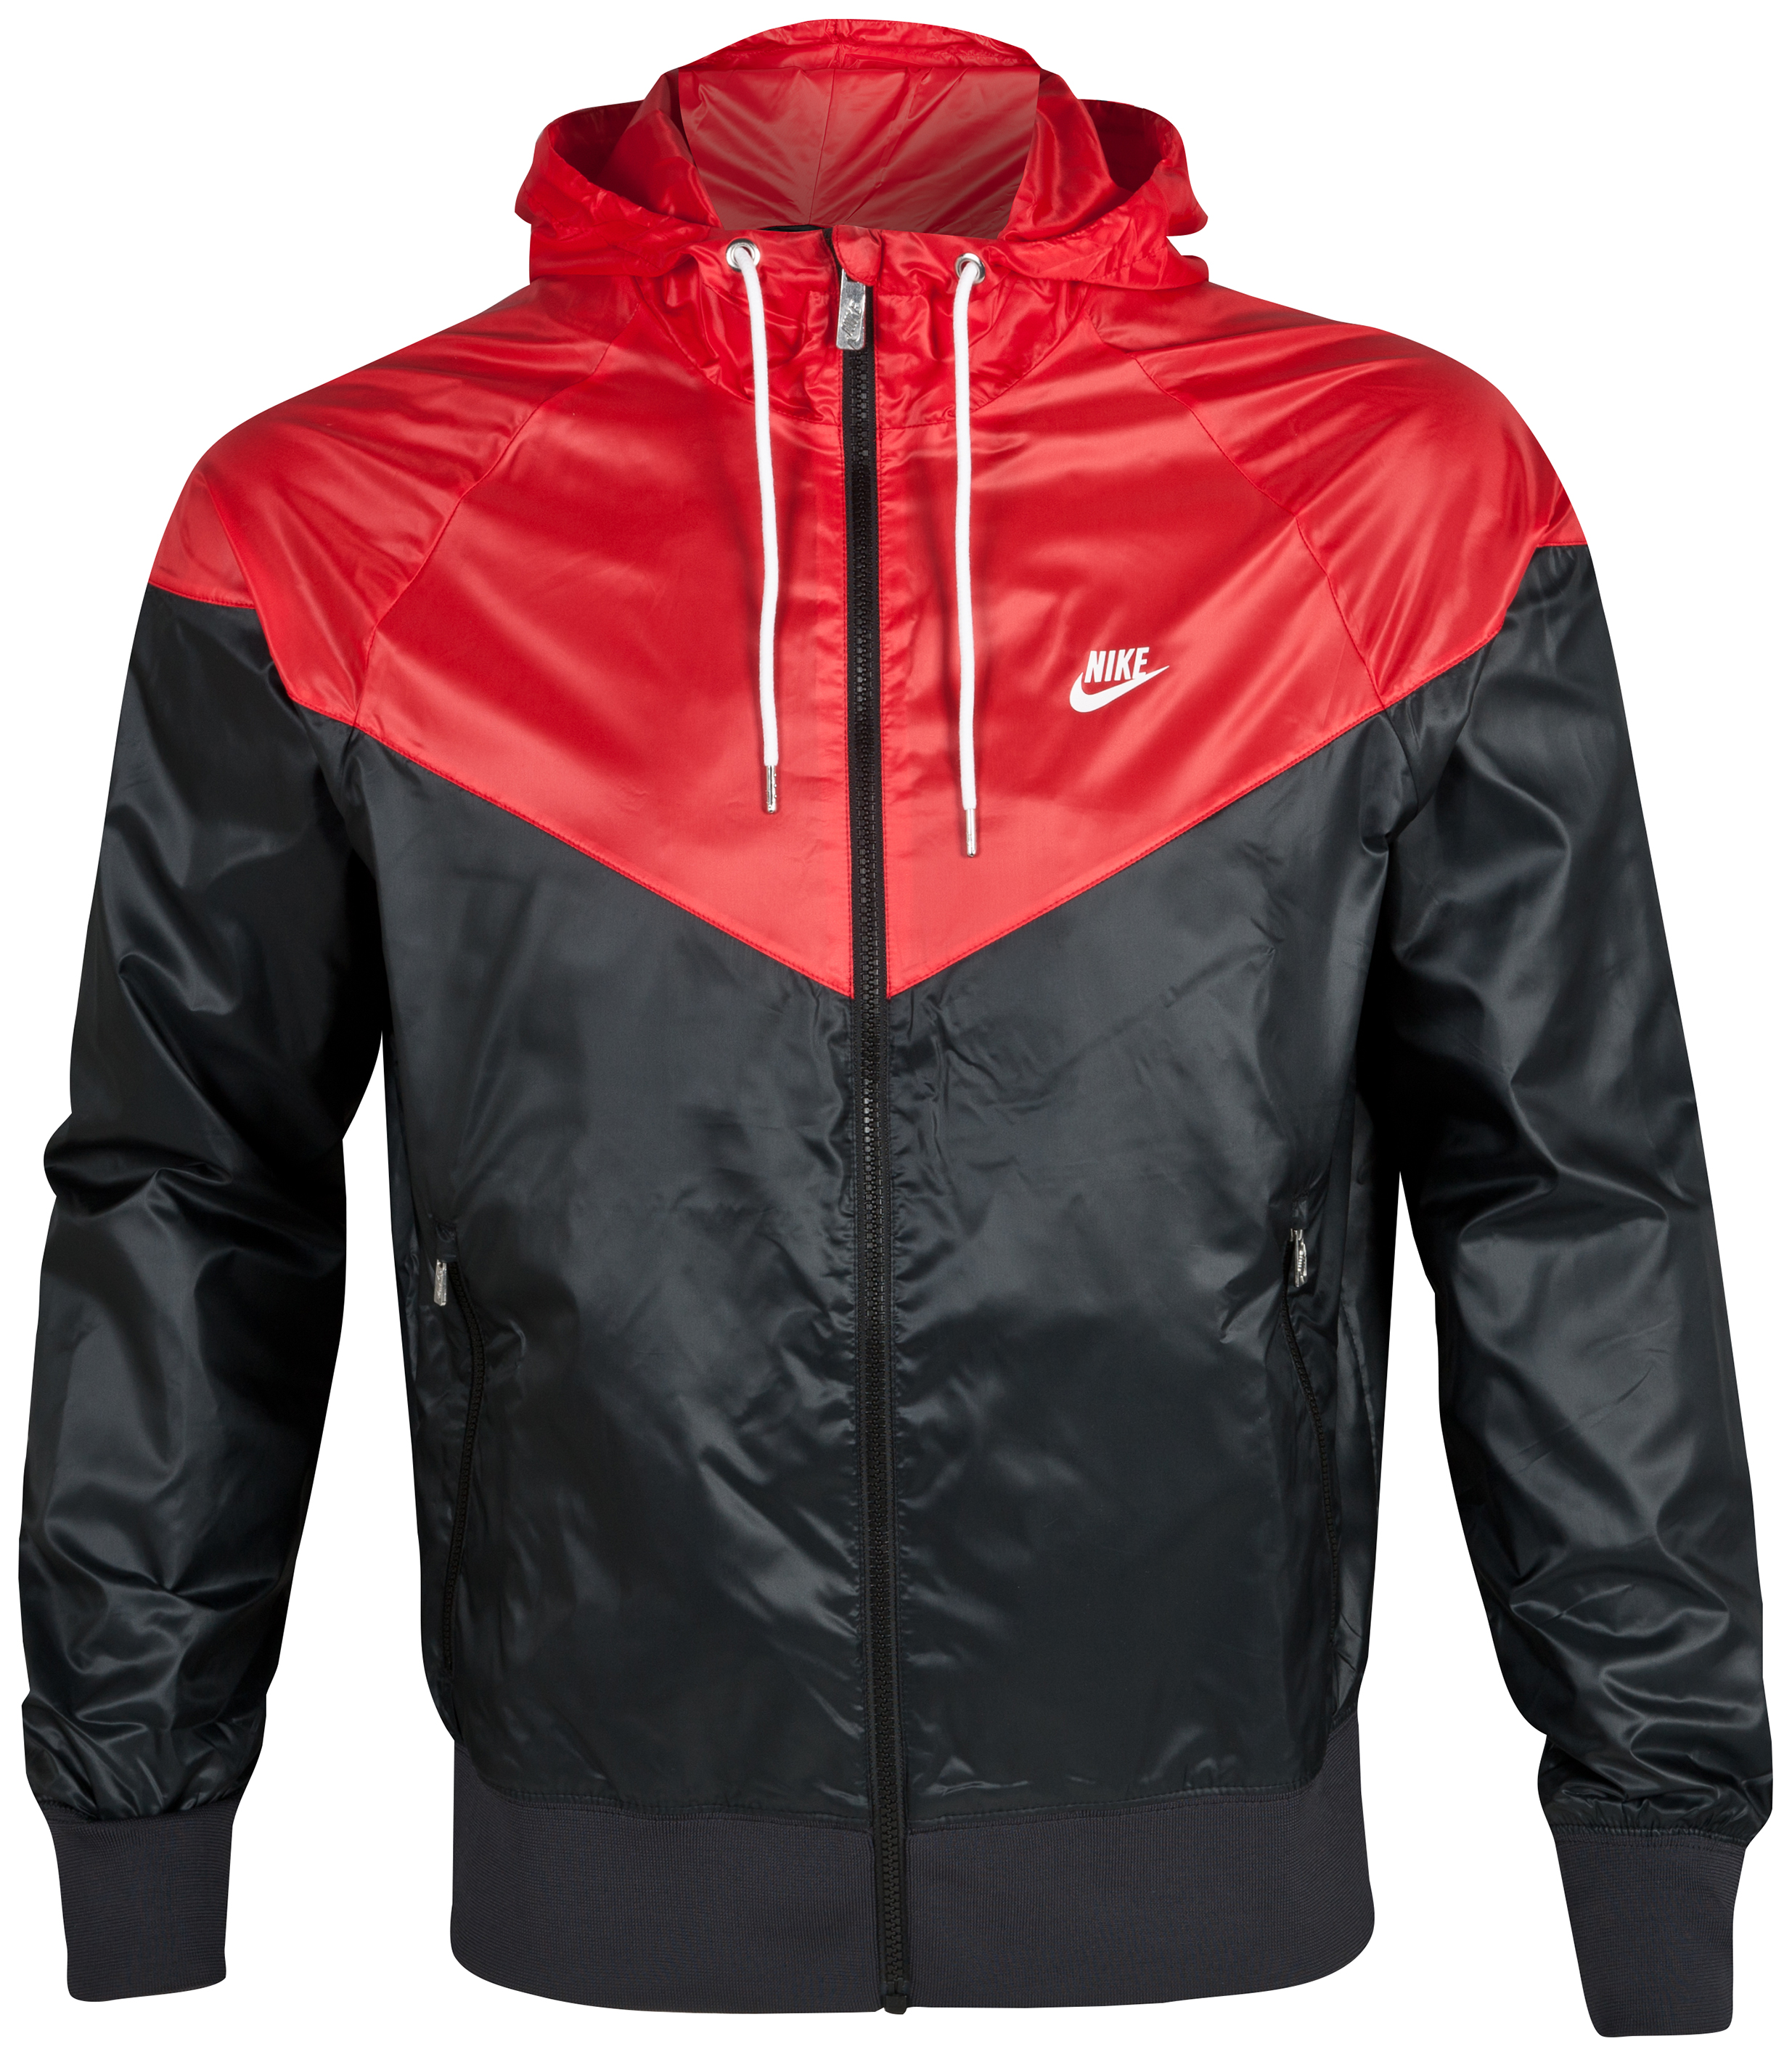 Nike Windrunner Jacket - Black/Gym Red/White